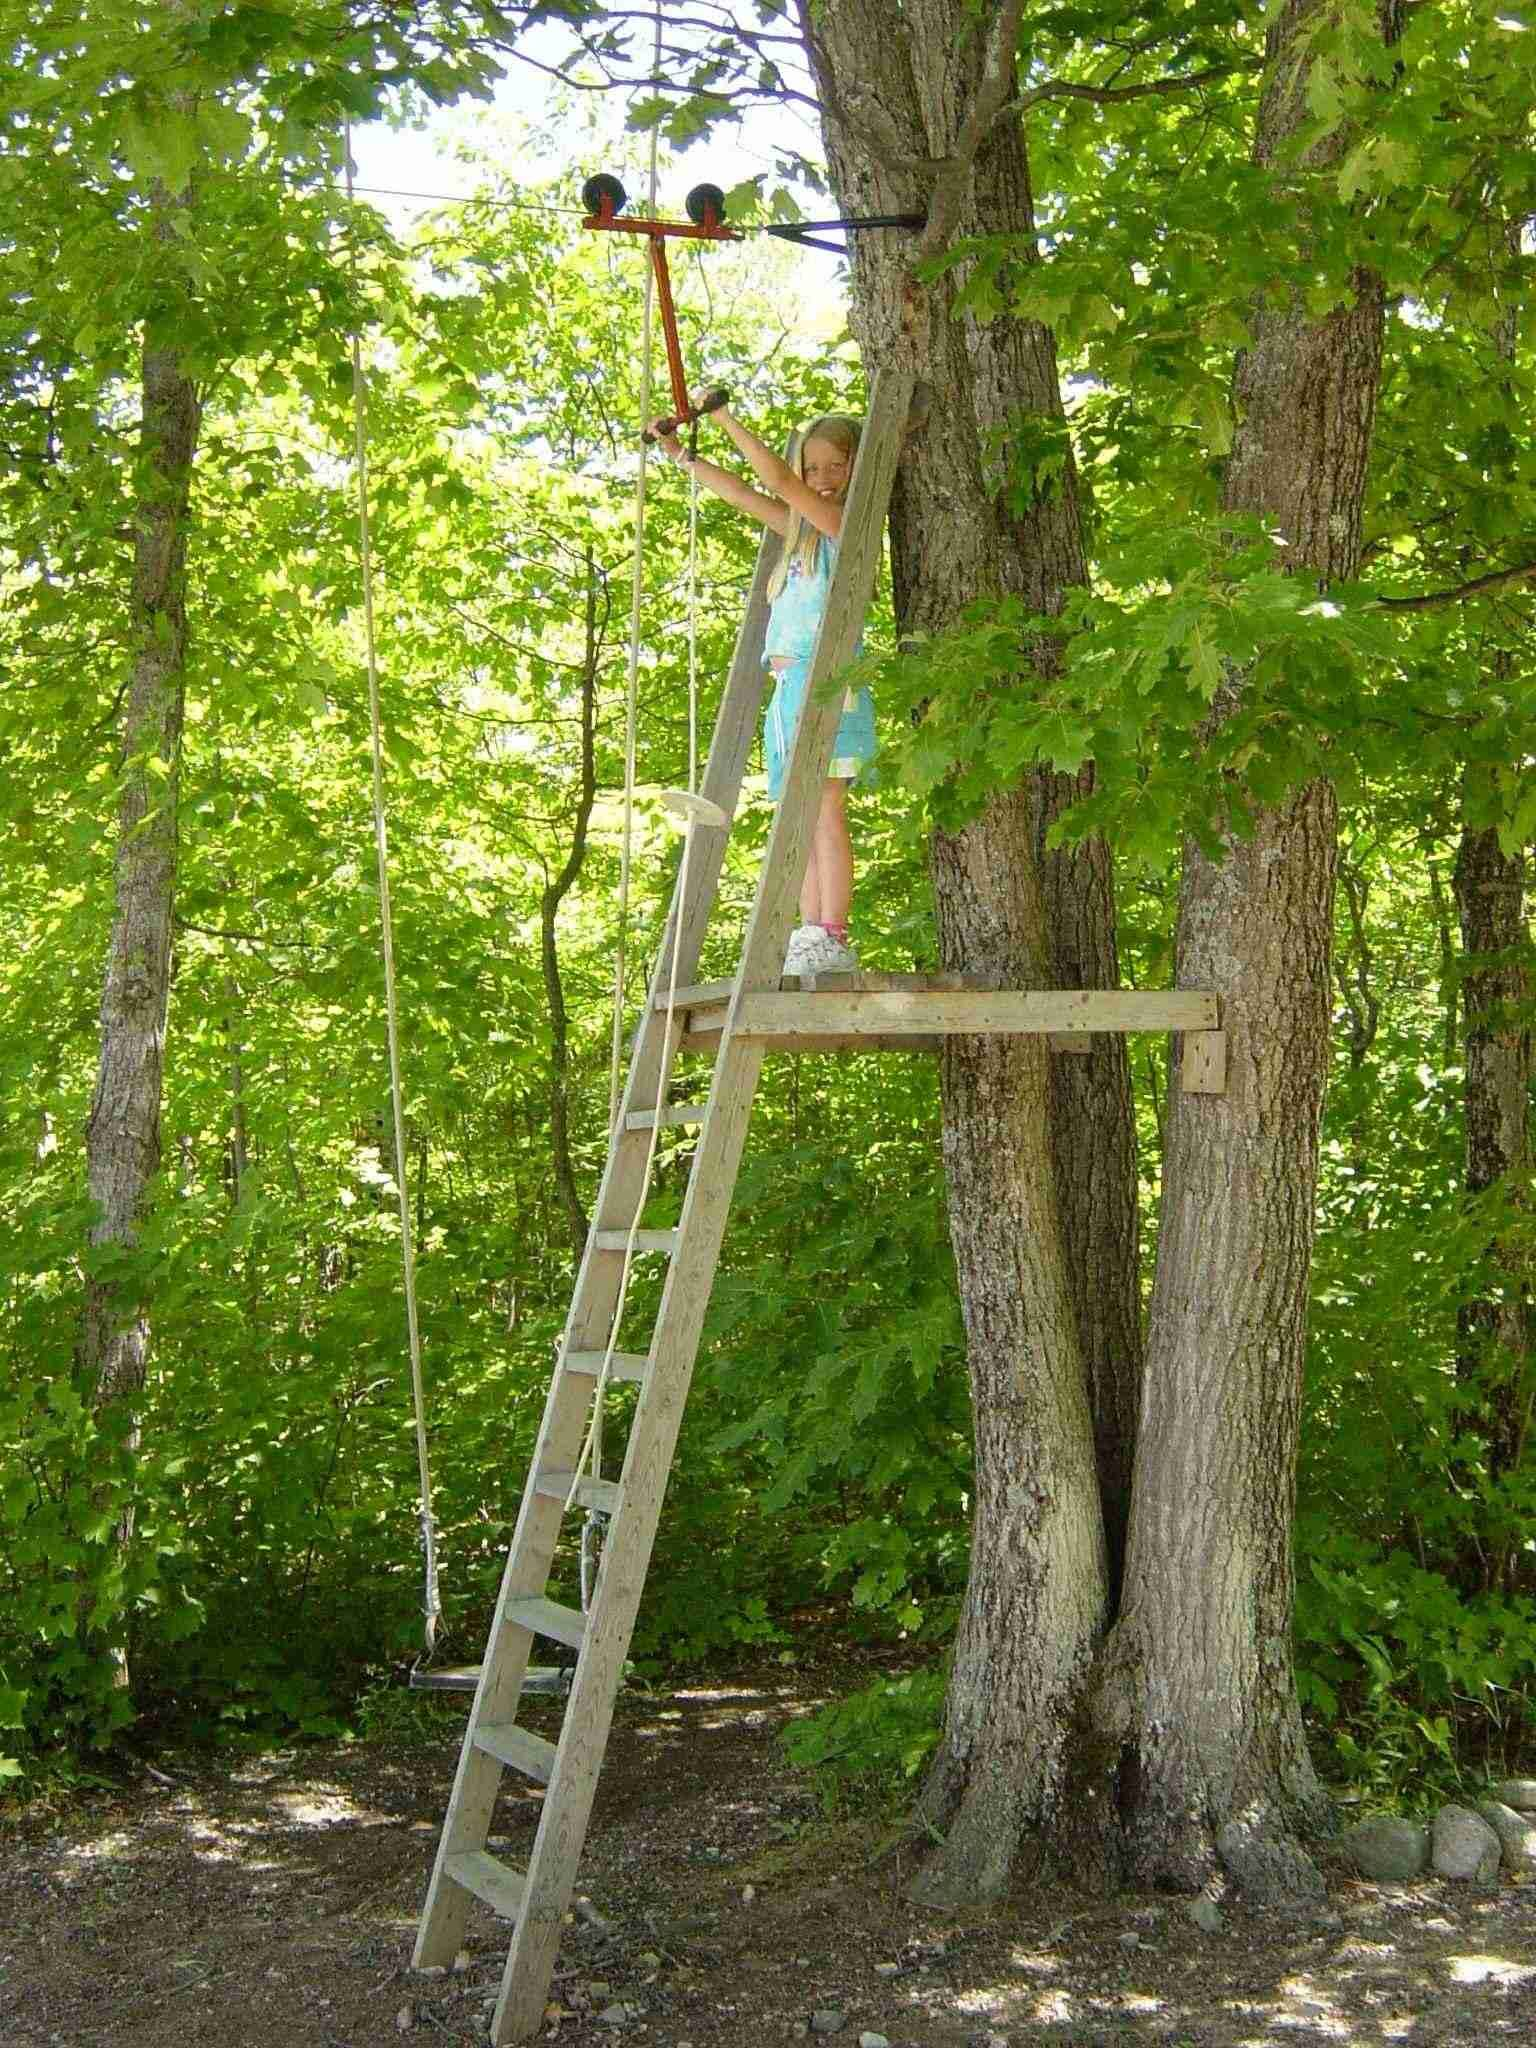 Zipline Tree Fort Note Great Structure And Support Ideas Ladder